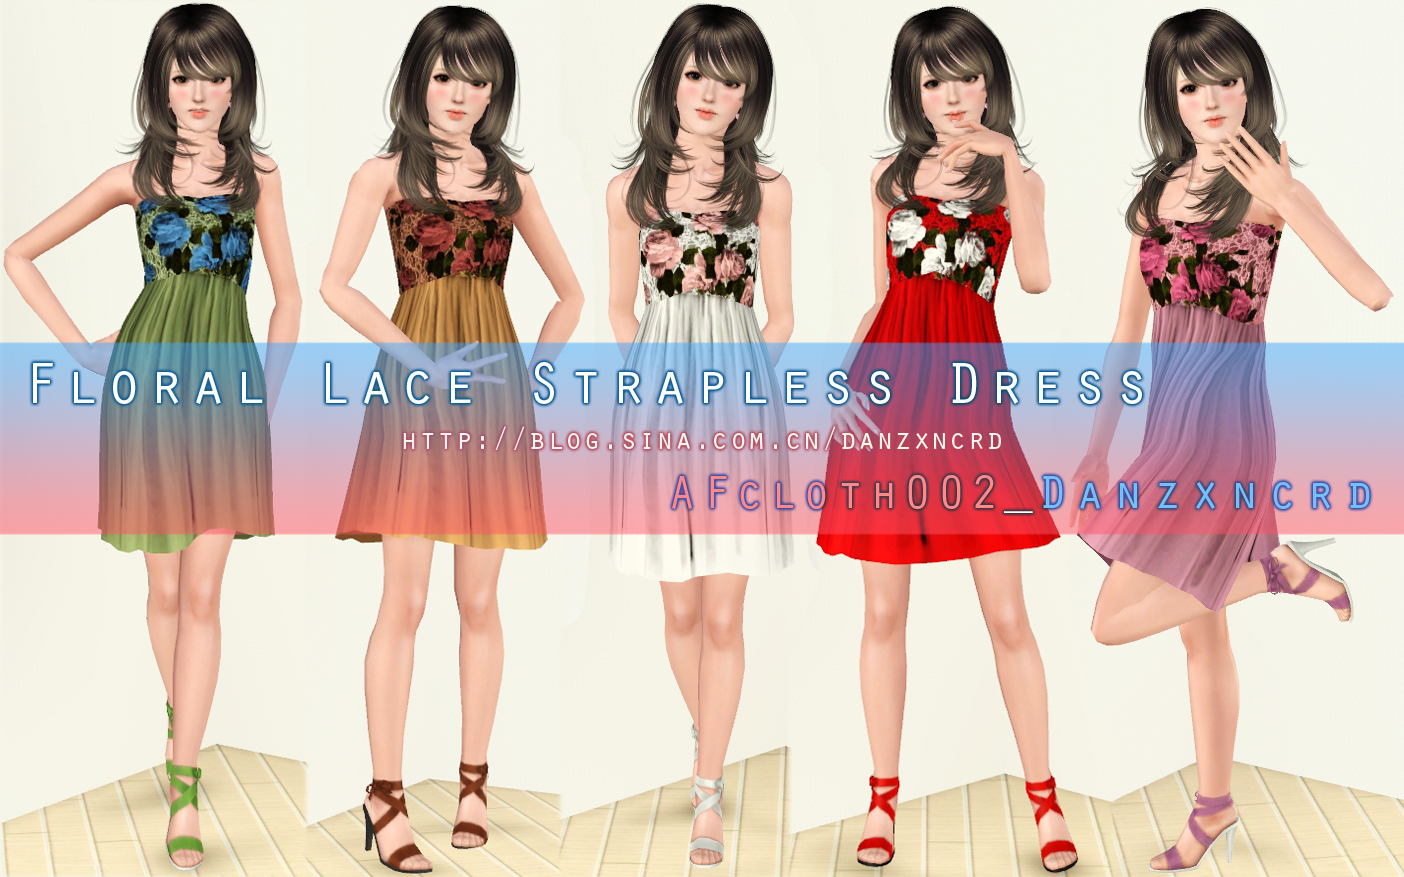 Floral Lace Strapless Dress by danzxncrd